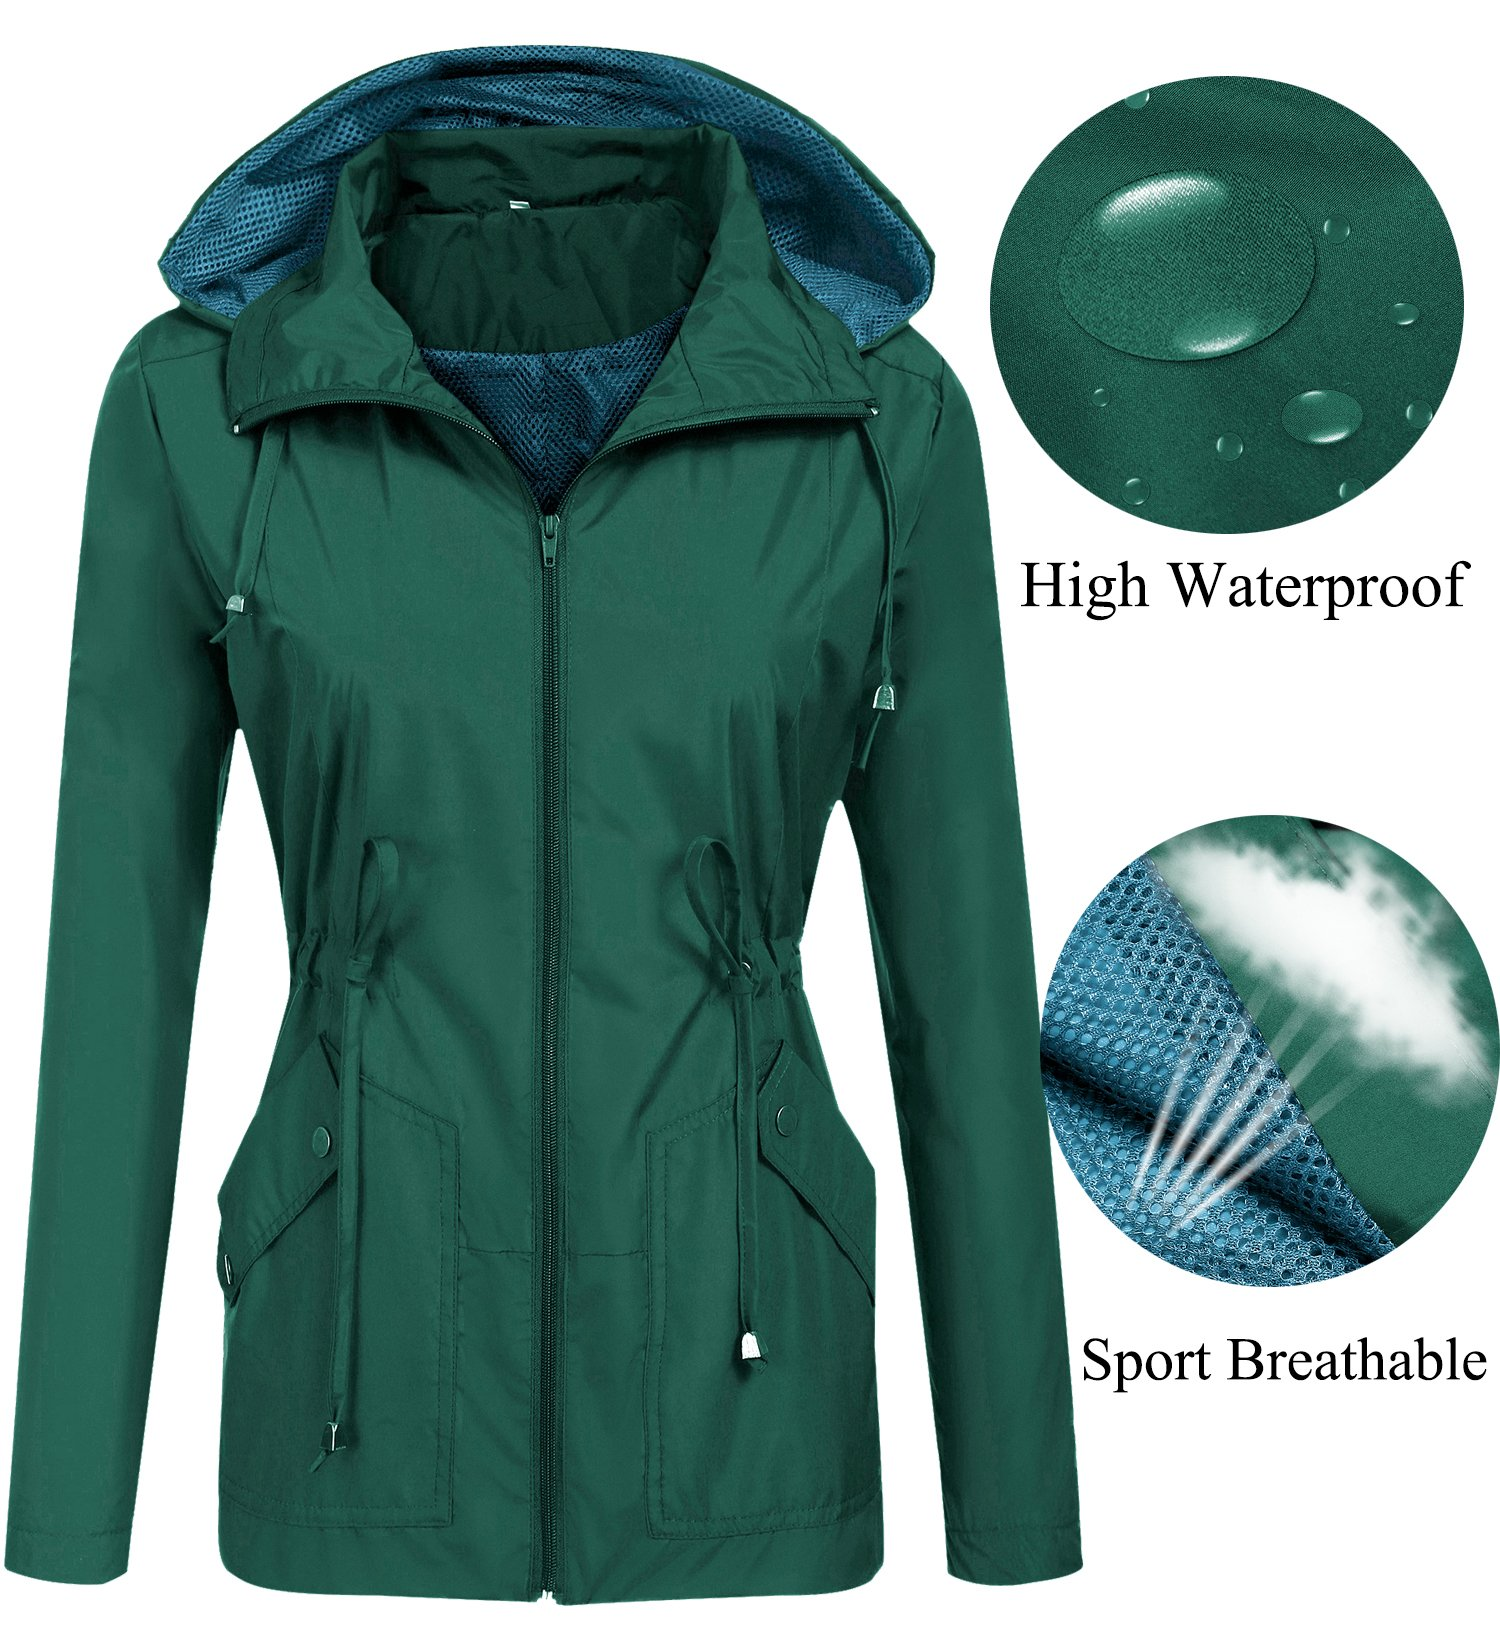 LOMON Breathable rain Jacket Lightweight for Women Hiking Running Packable Outdoor Active